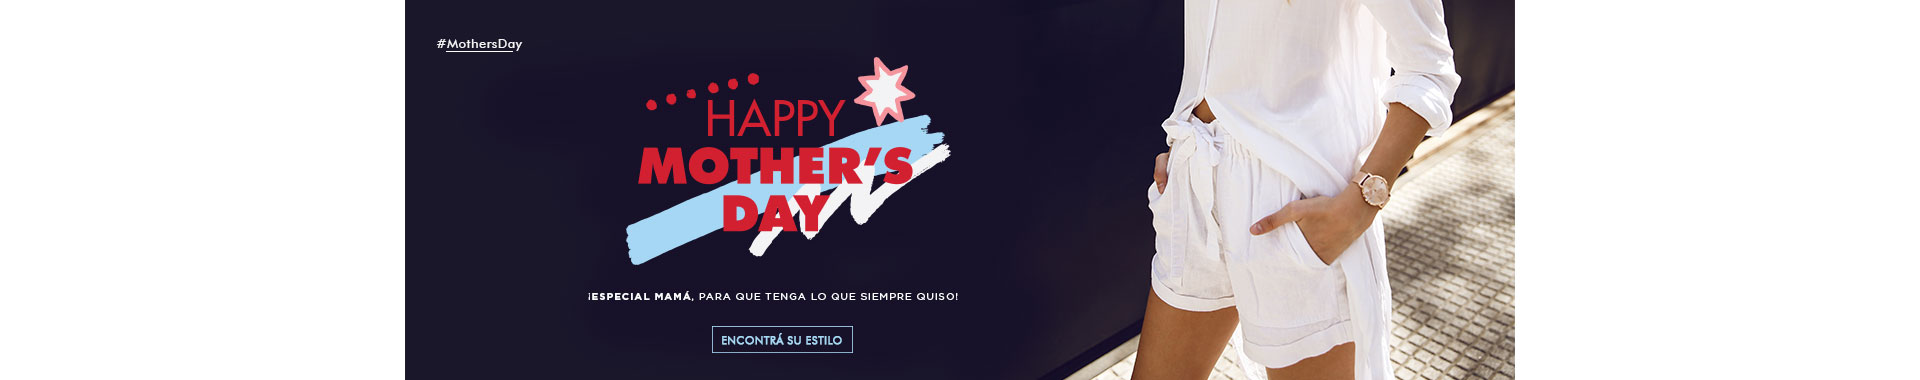 banner mothers day style